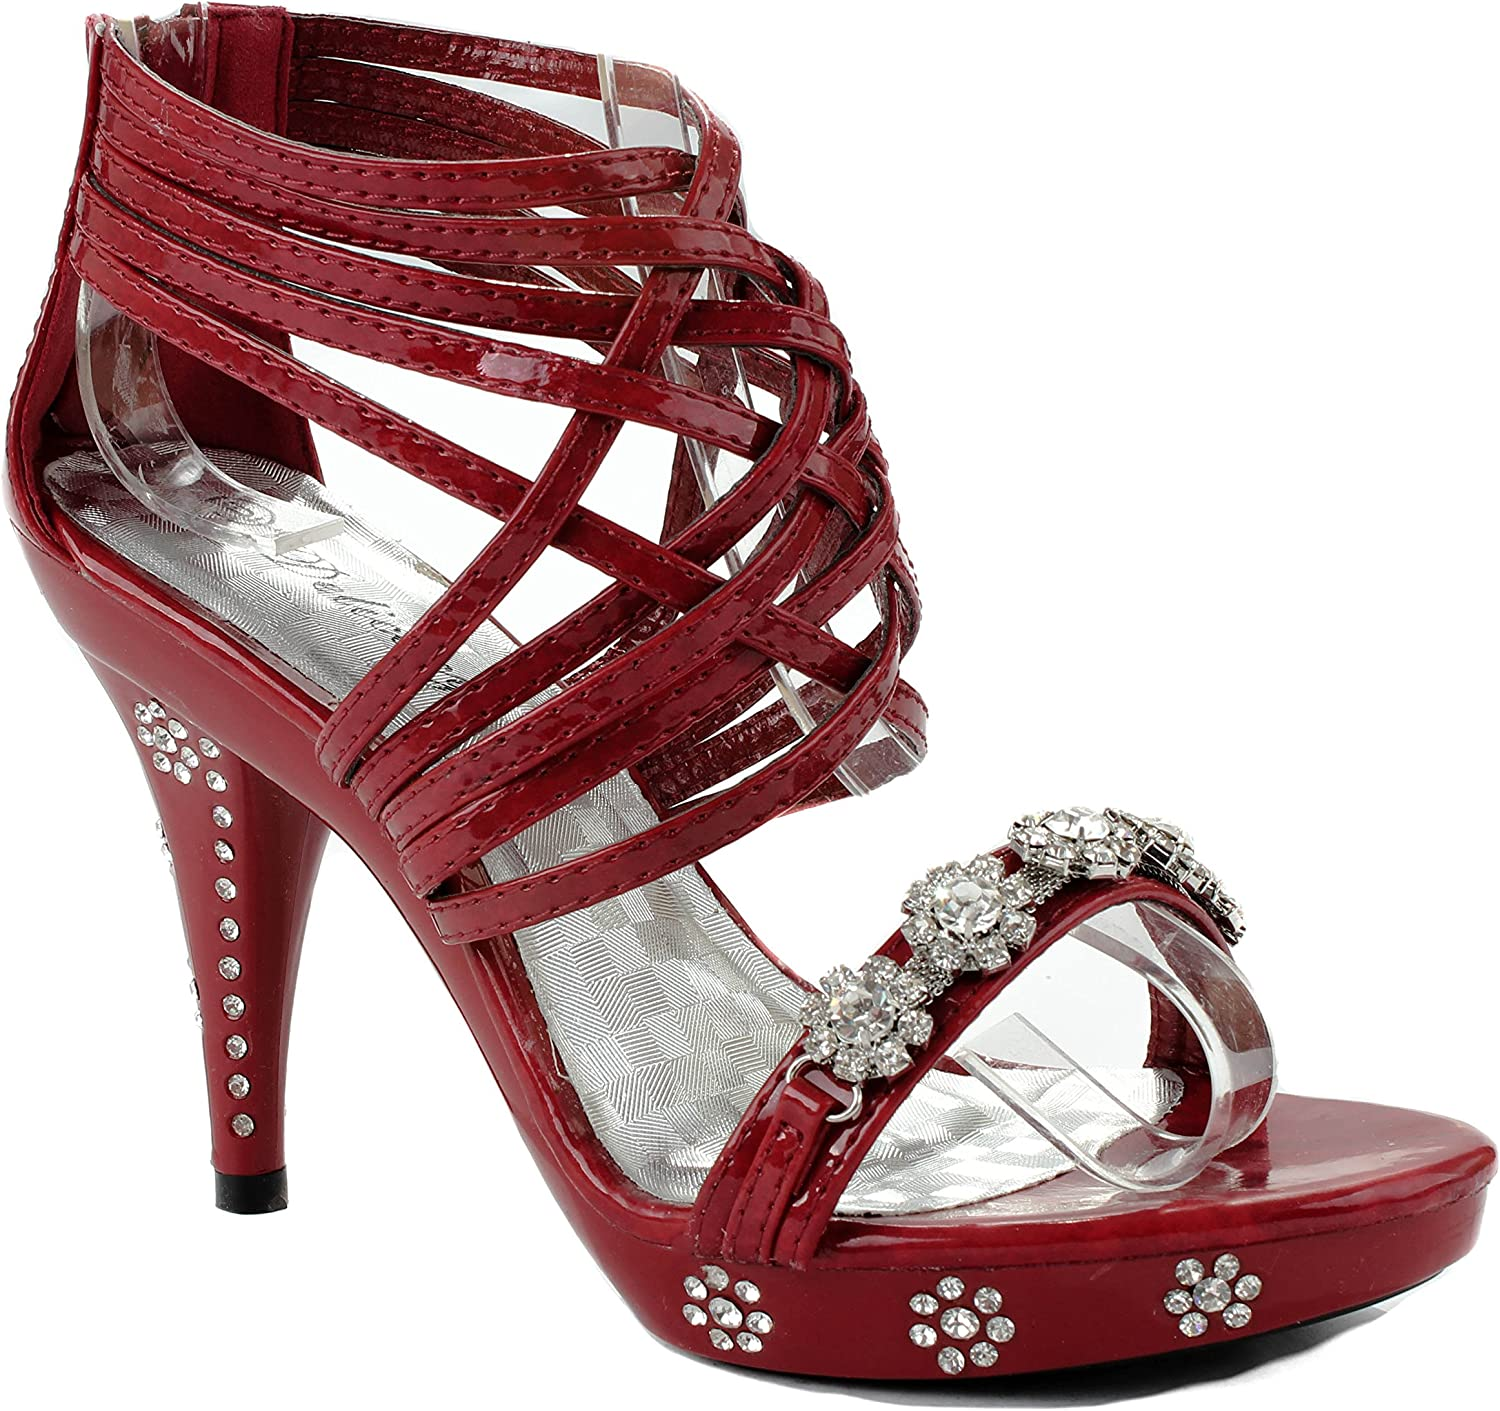 Delicacy Womens Teresa-27 Red Party shoes 8 D(M) US